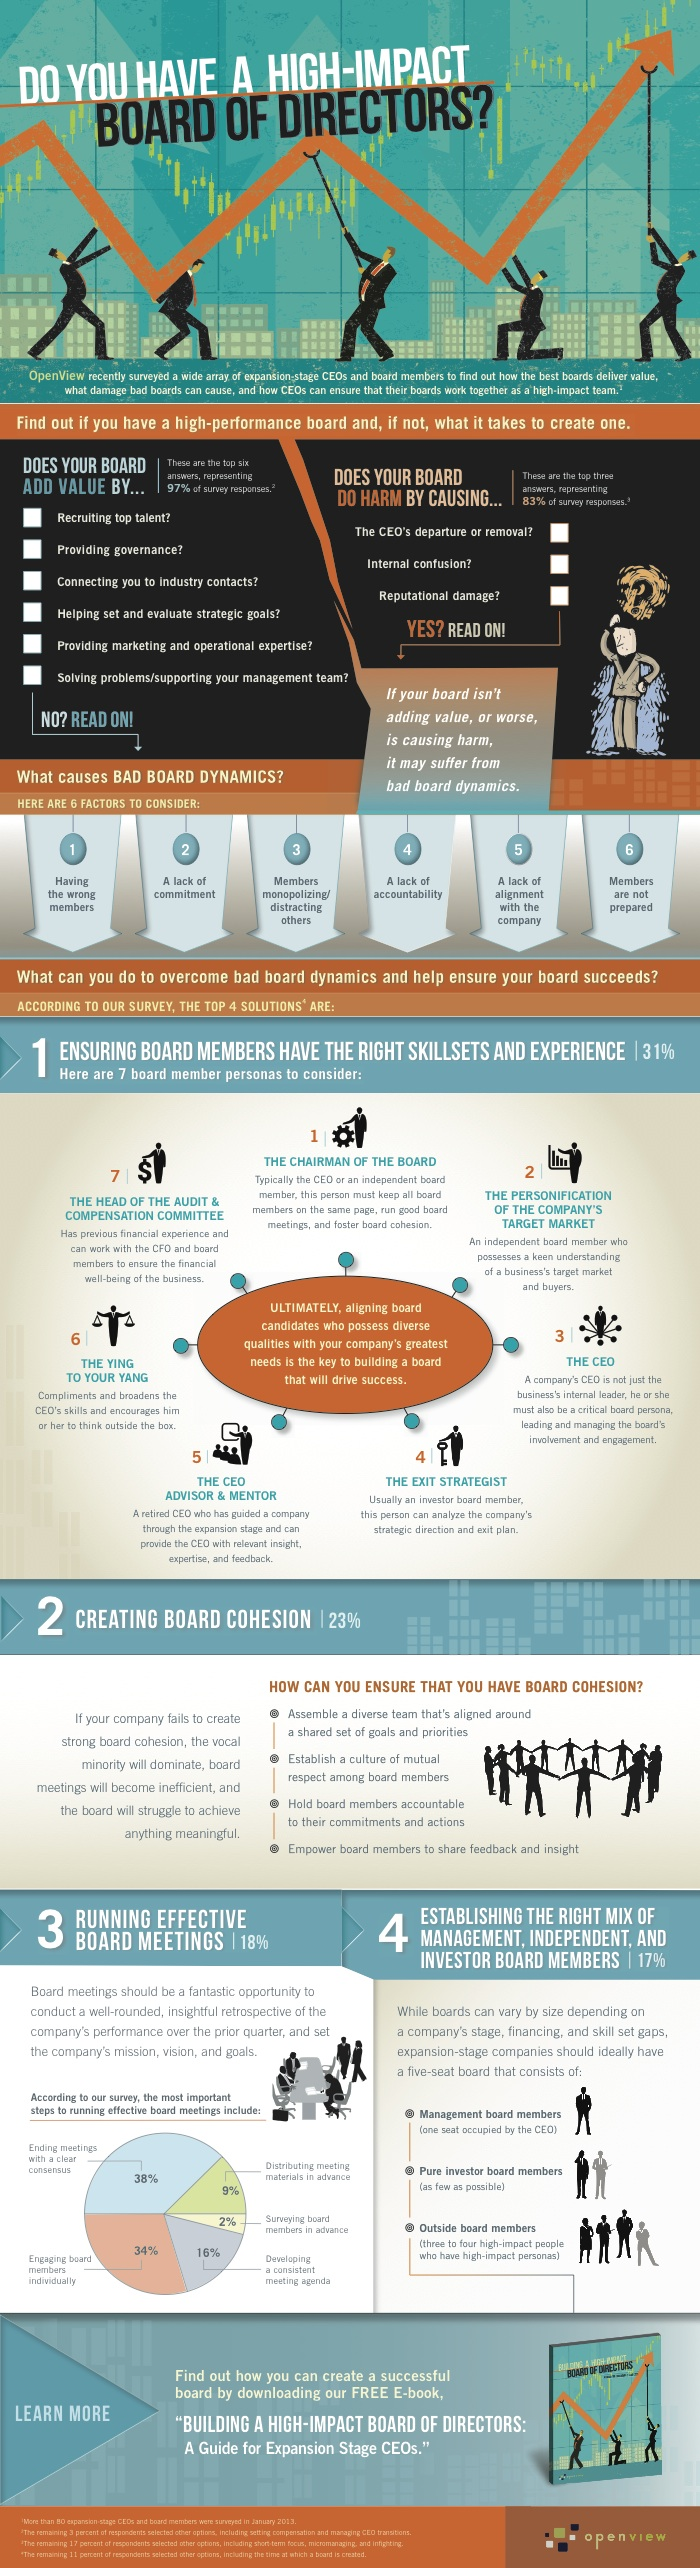 Do You Have a High-Impact Board of Directors?